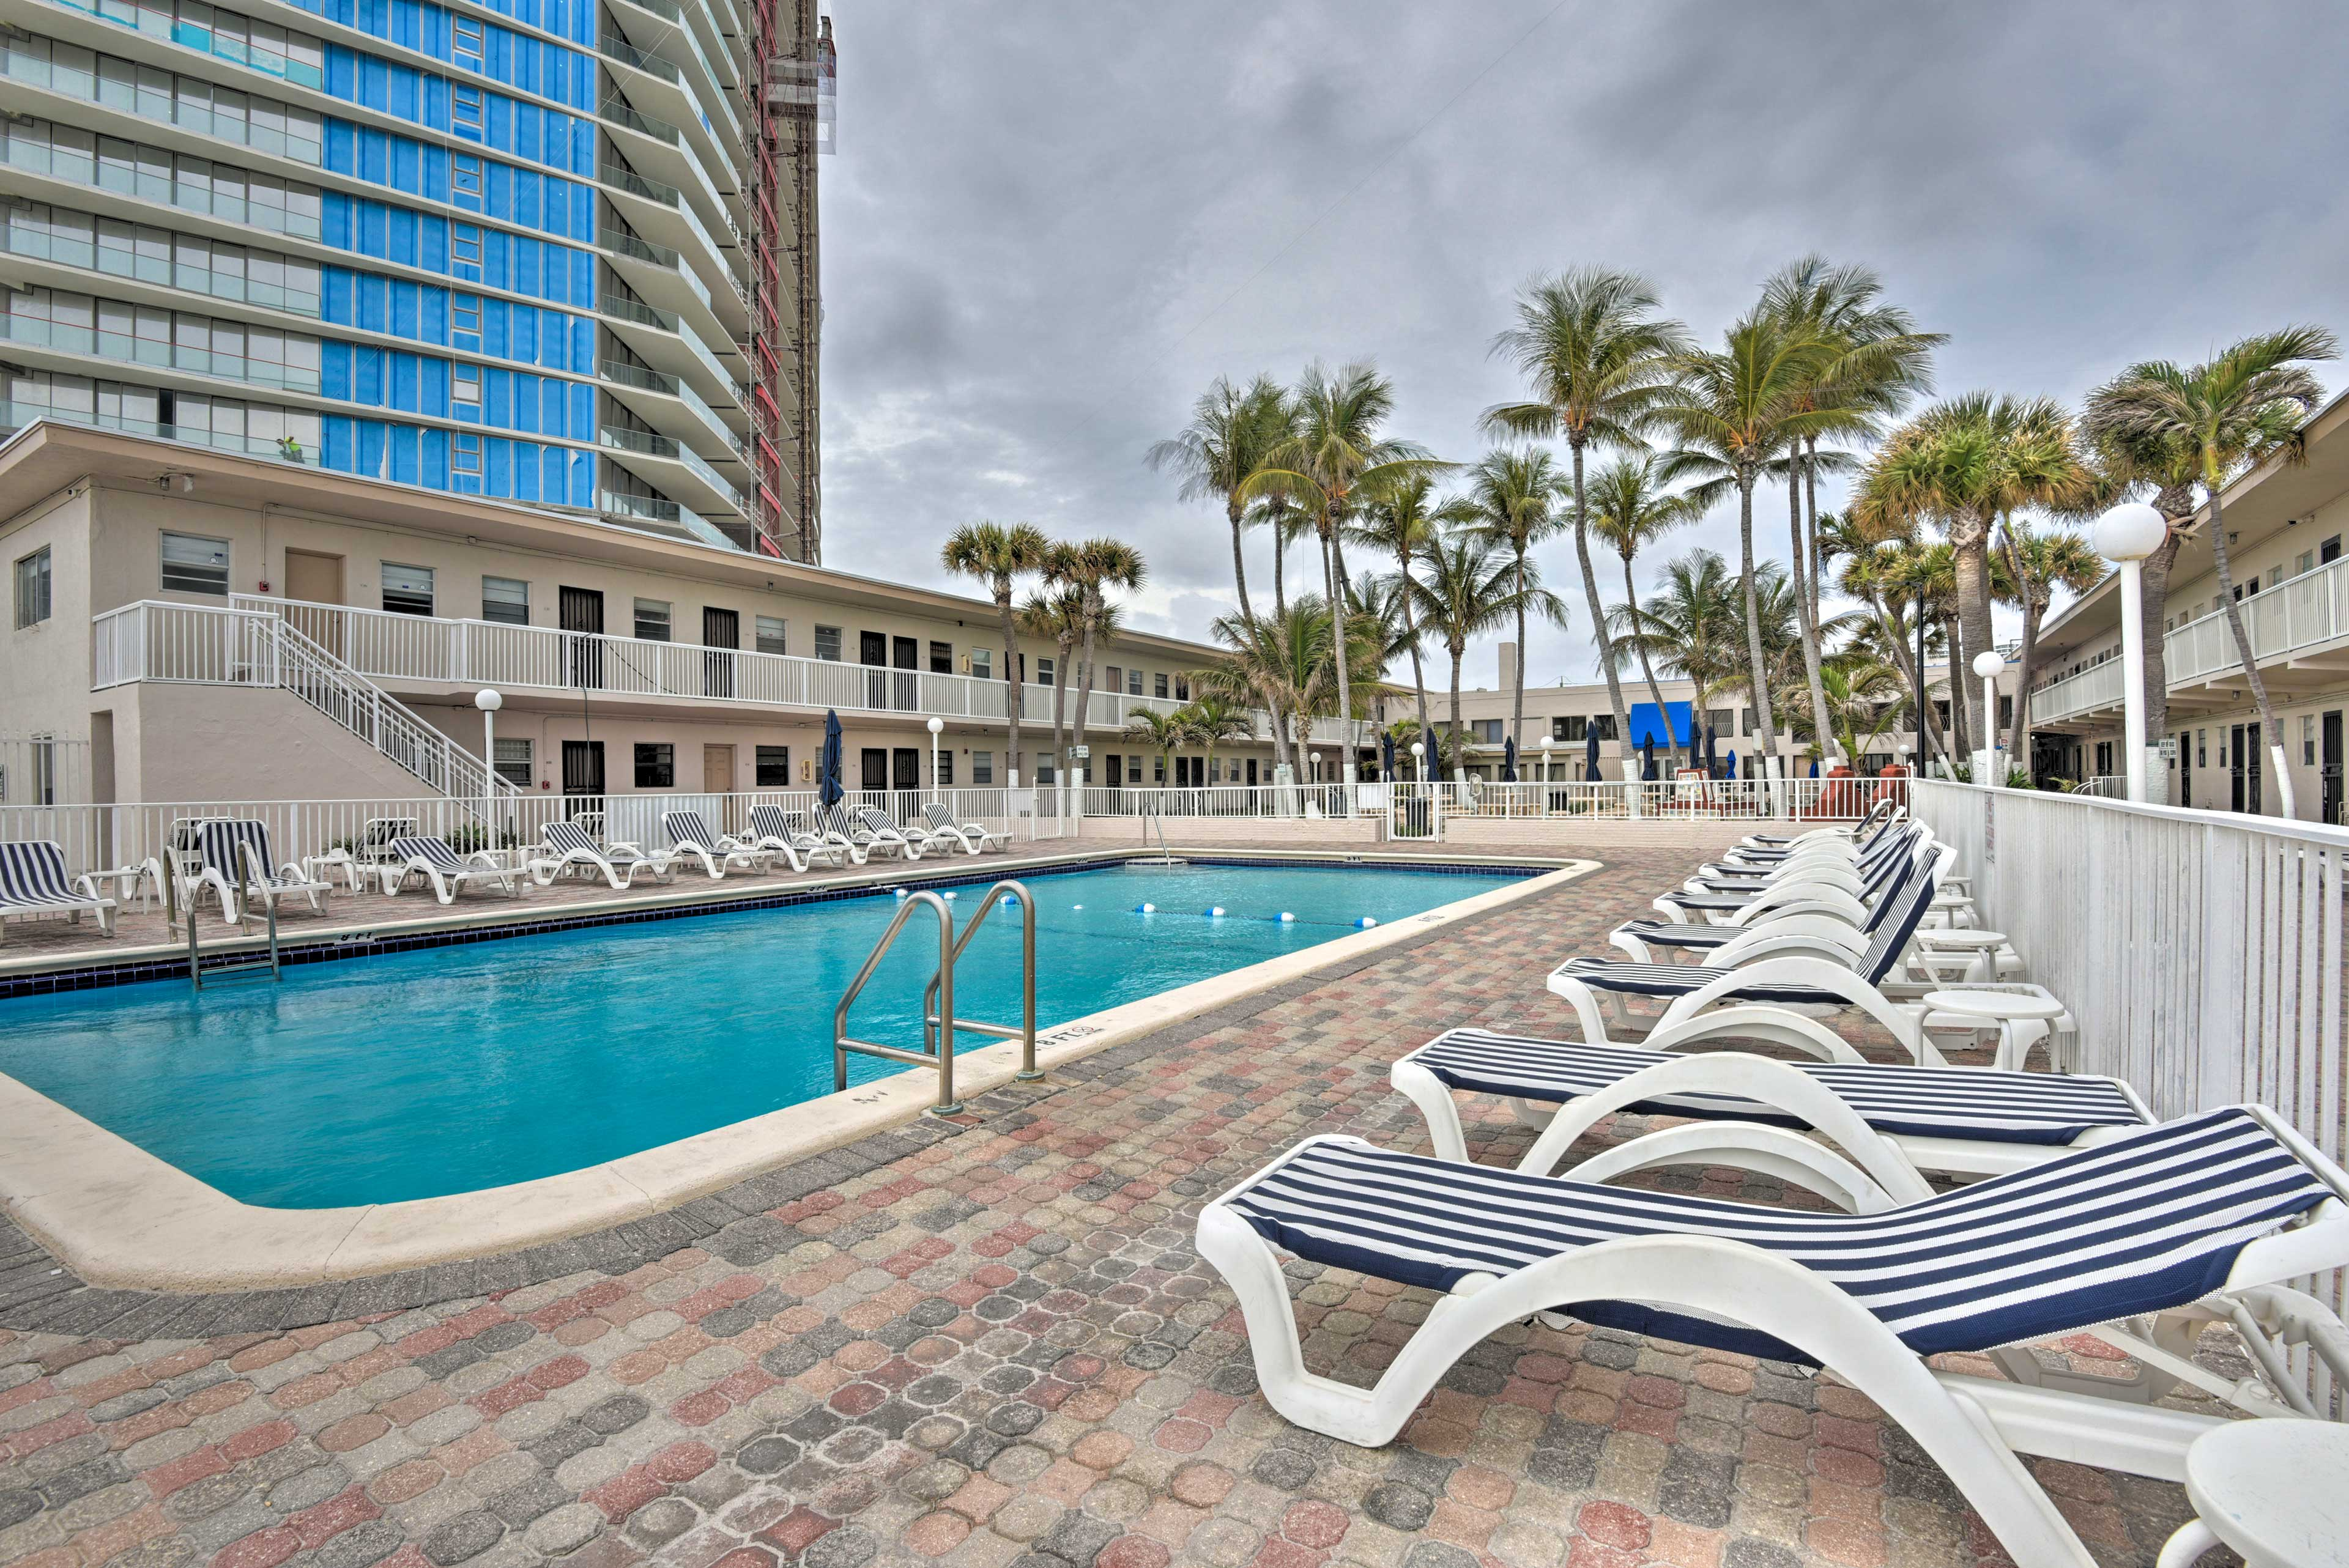 Find your perfect placement on one of the loungers for relaxation under the sun.